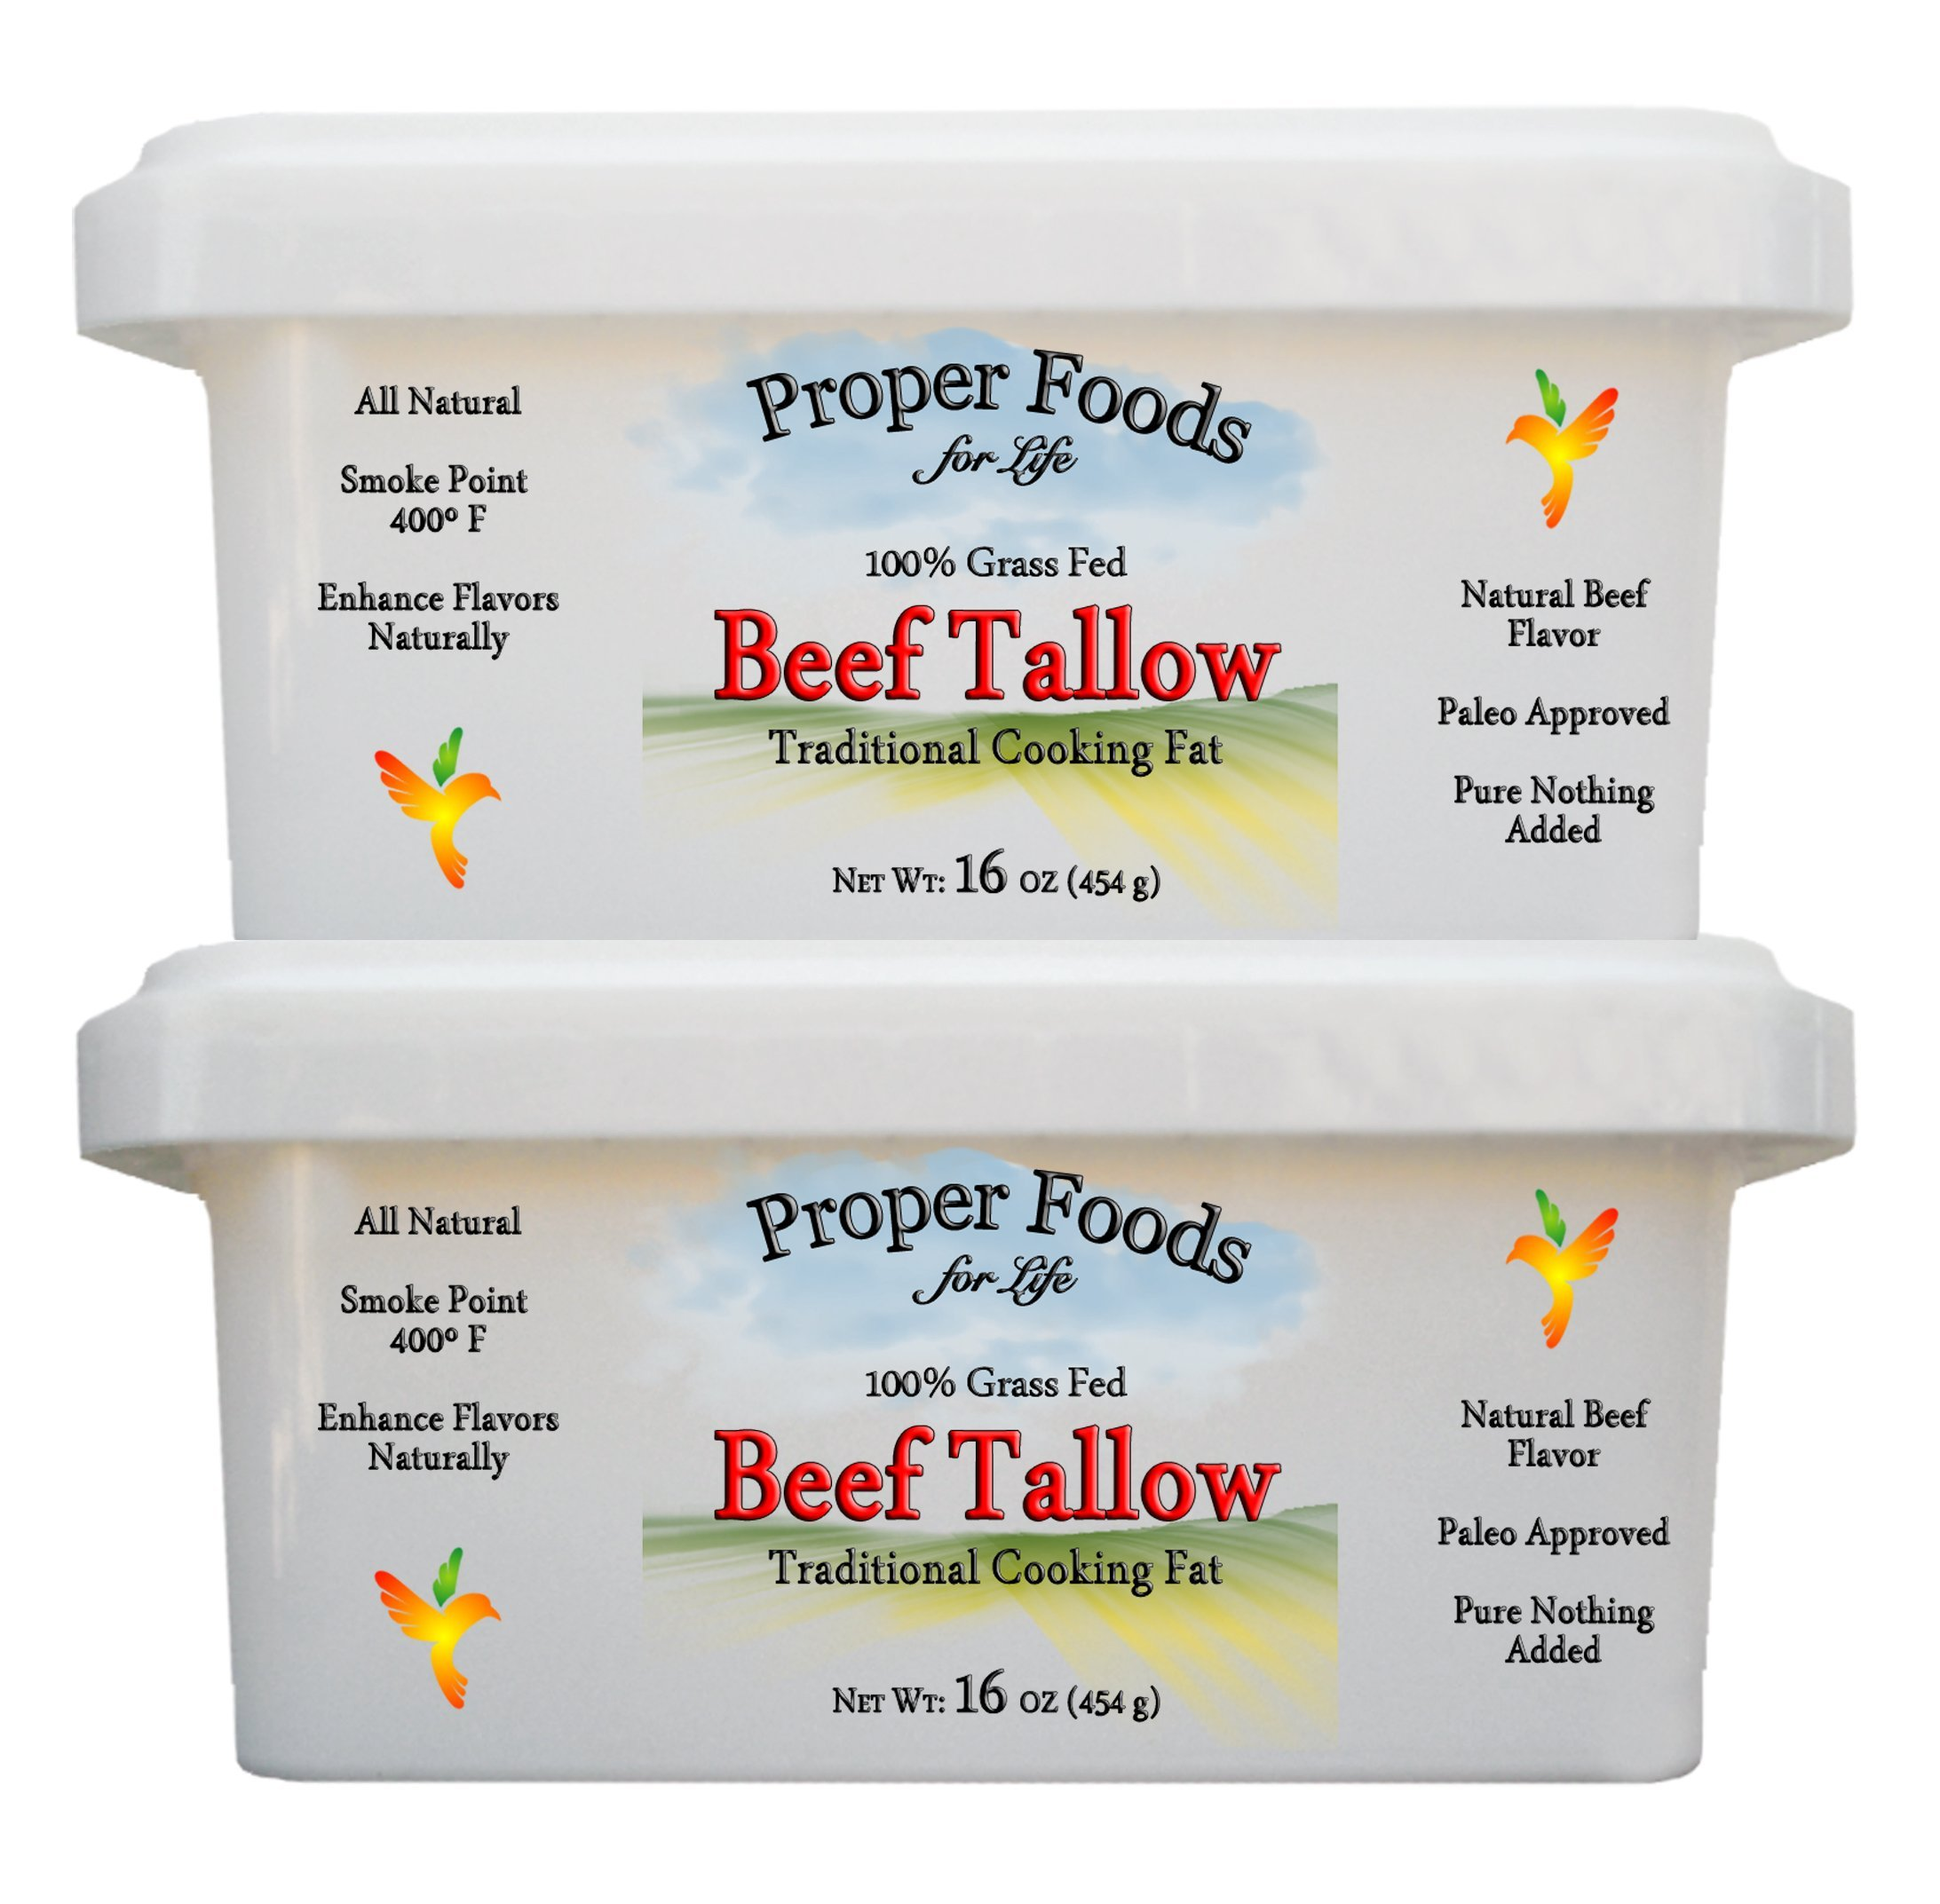 Proper Foods 100% Grass-Fed Beef Tallow, Cooking & Baking, 16 oz (Pack of 2) by Proper Foods For Life (Image #2)